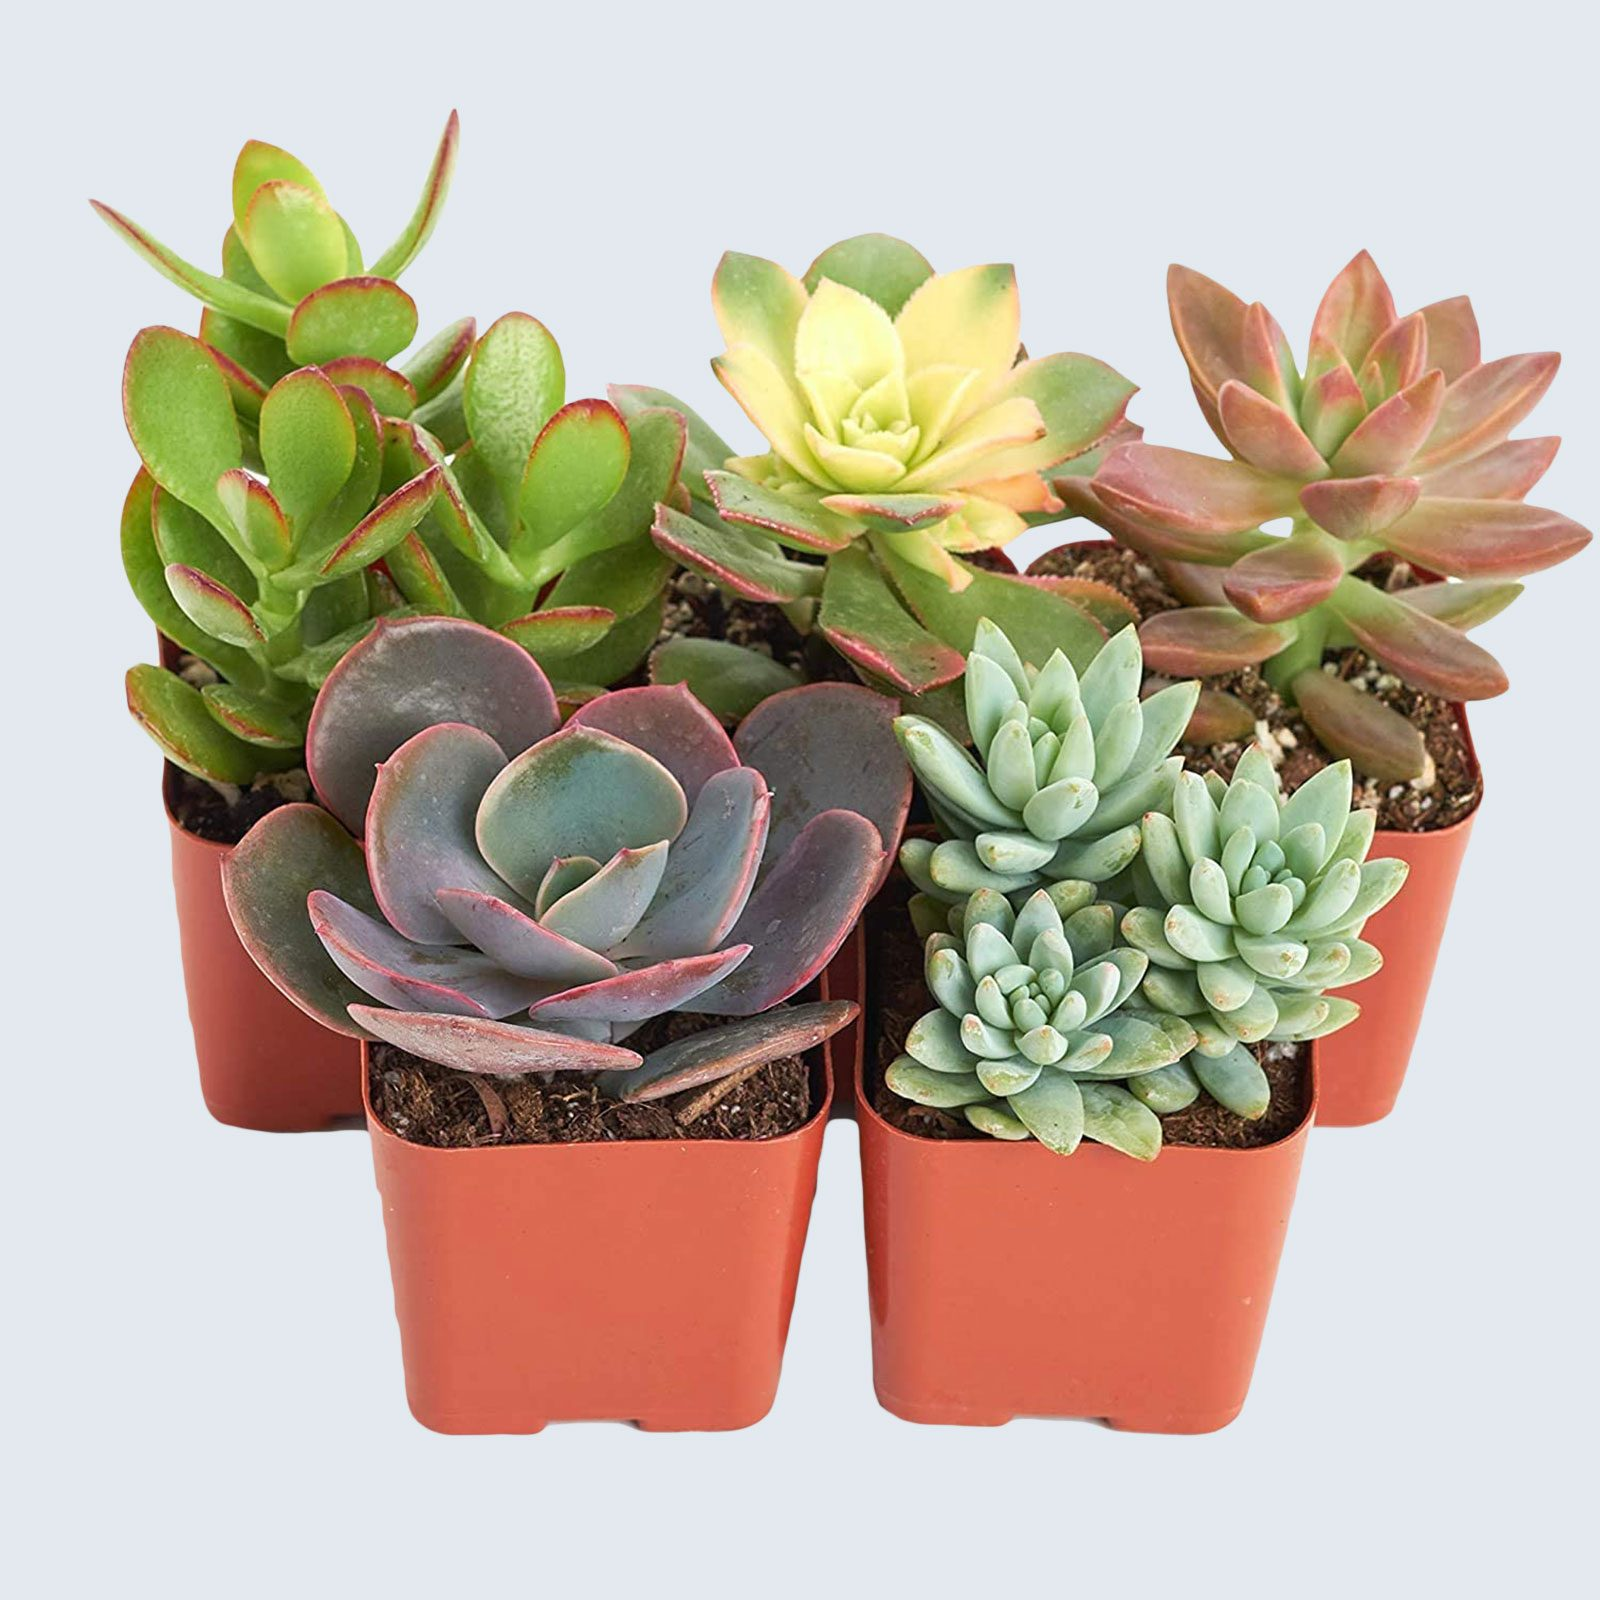 For the mom who lacks a green thumb: Shop Succulents Assorted Live Plants